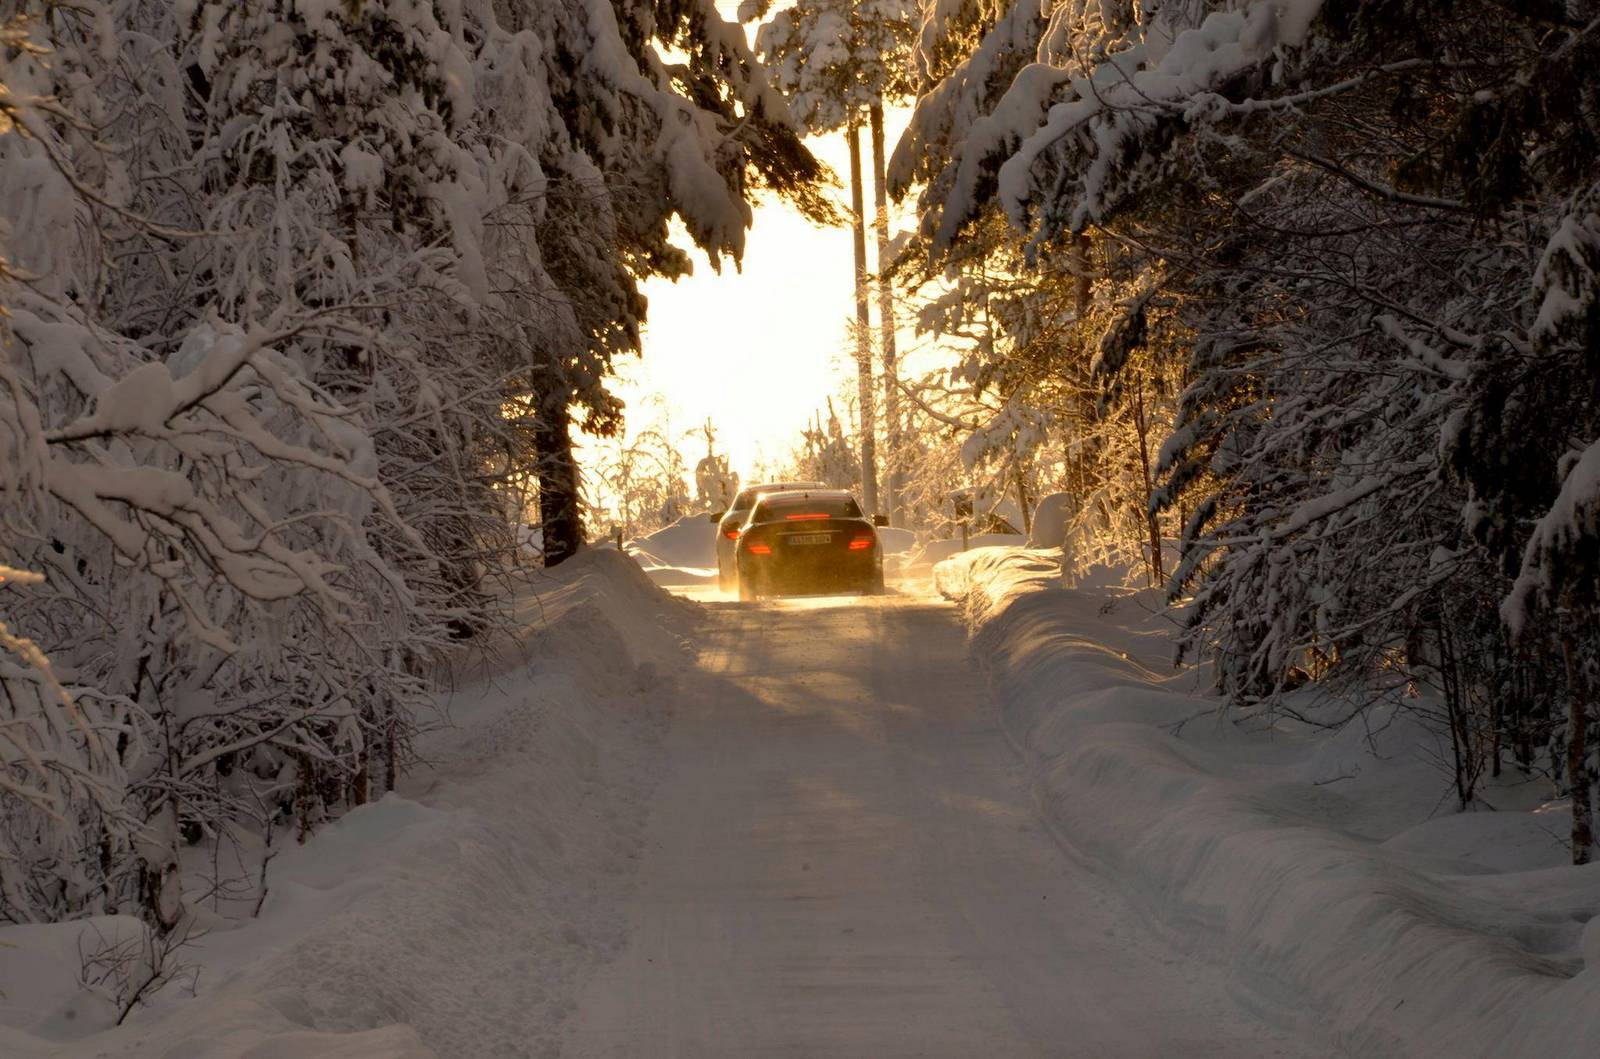 Mercedes Benz Winter Driving Experience Kicks Off In